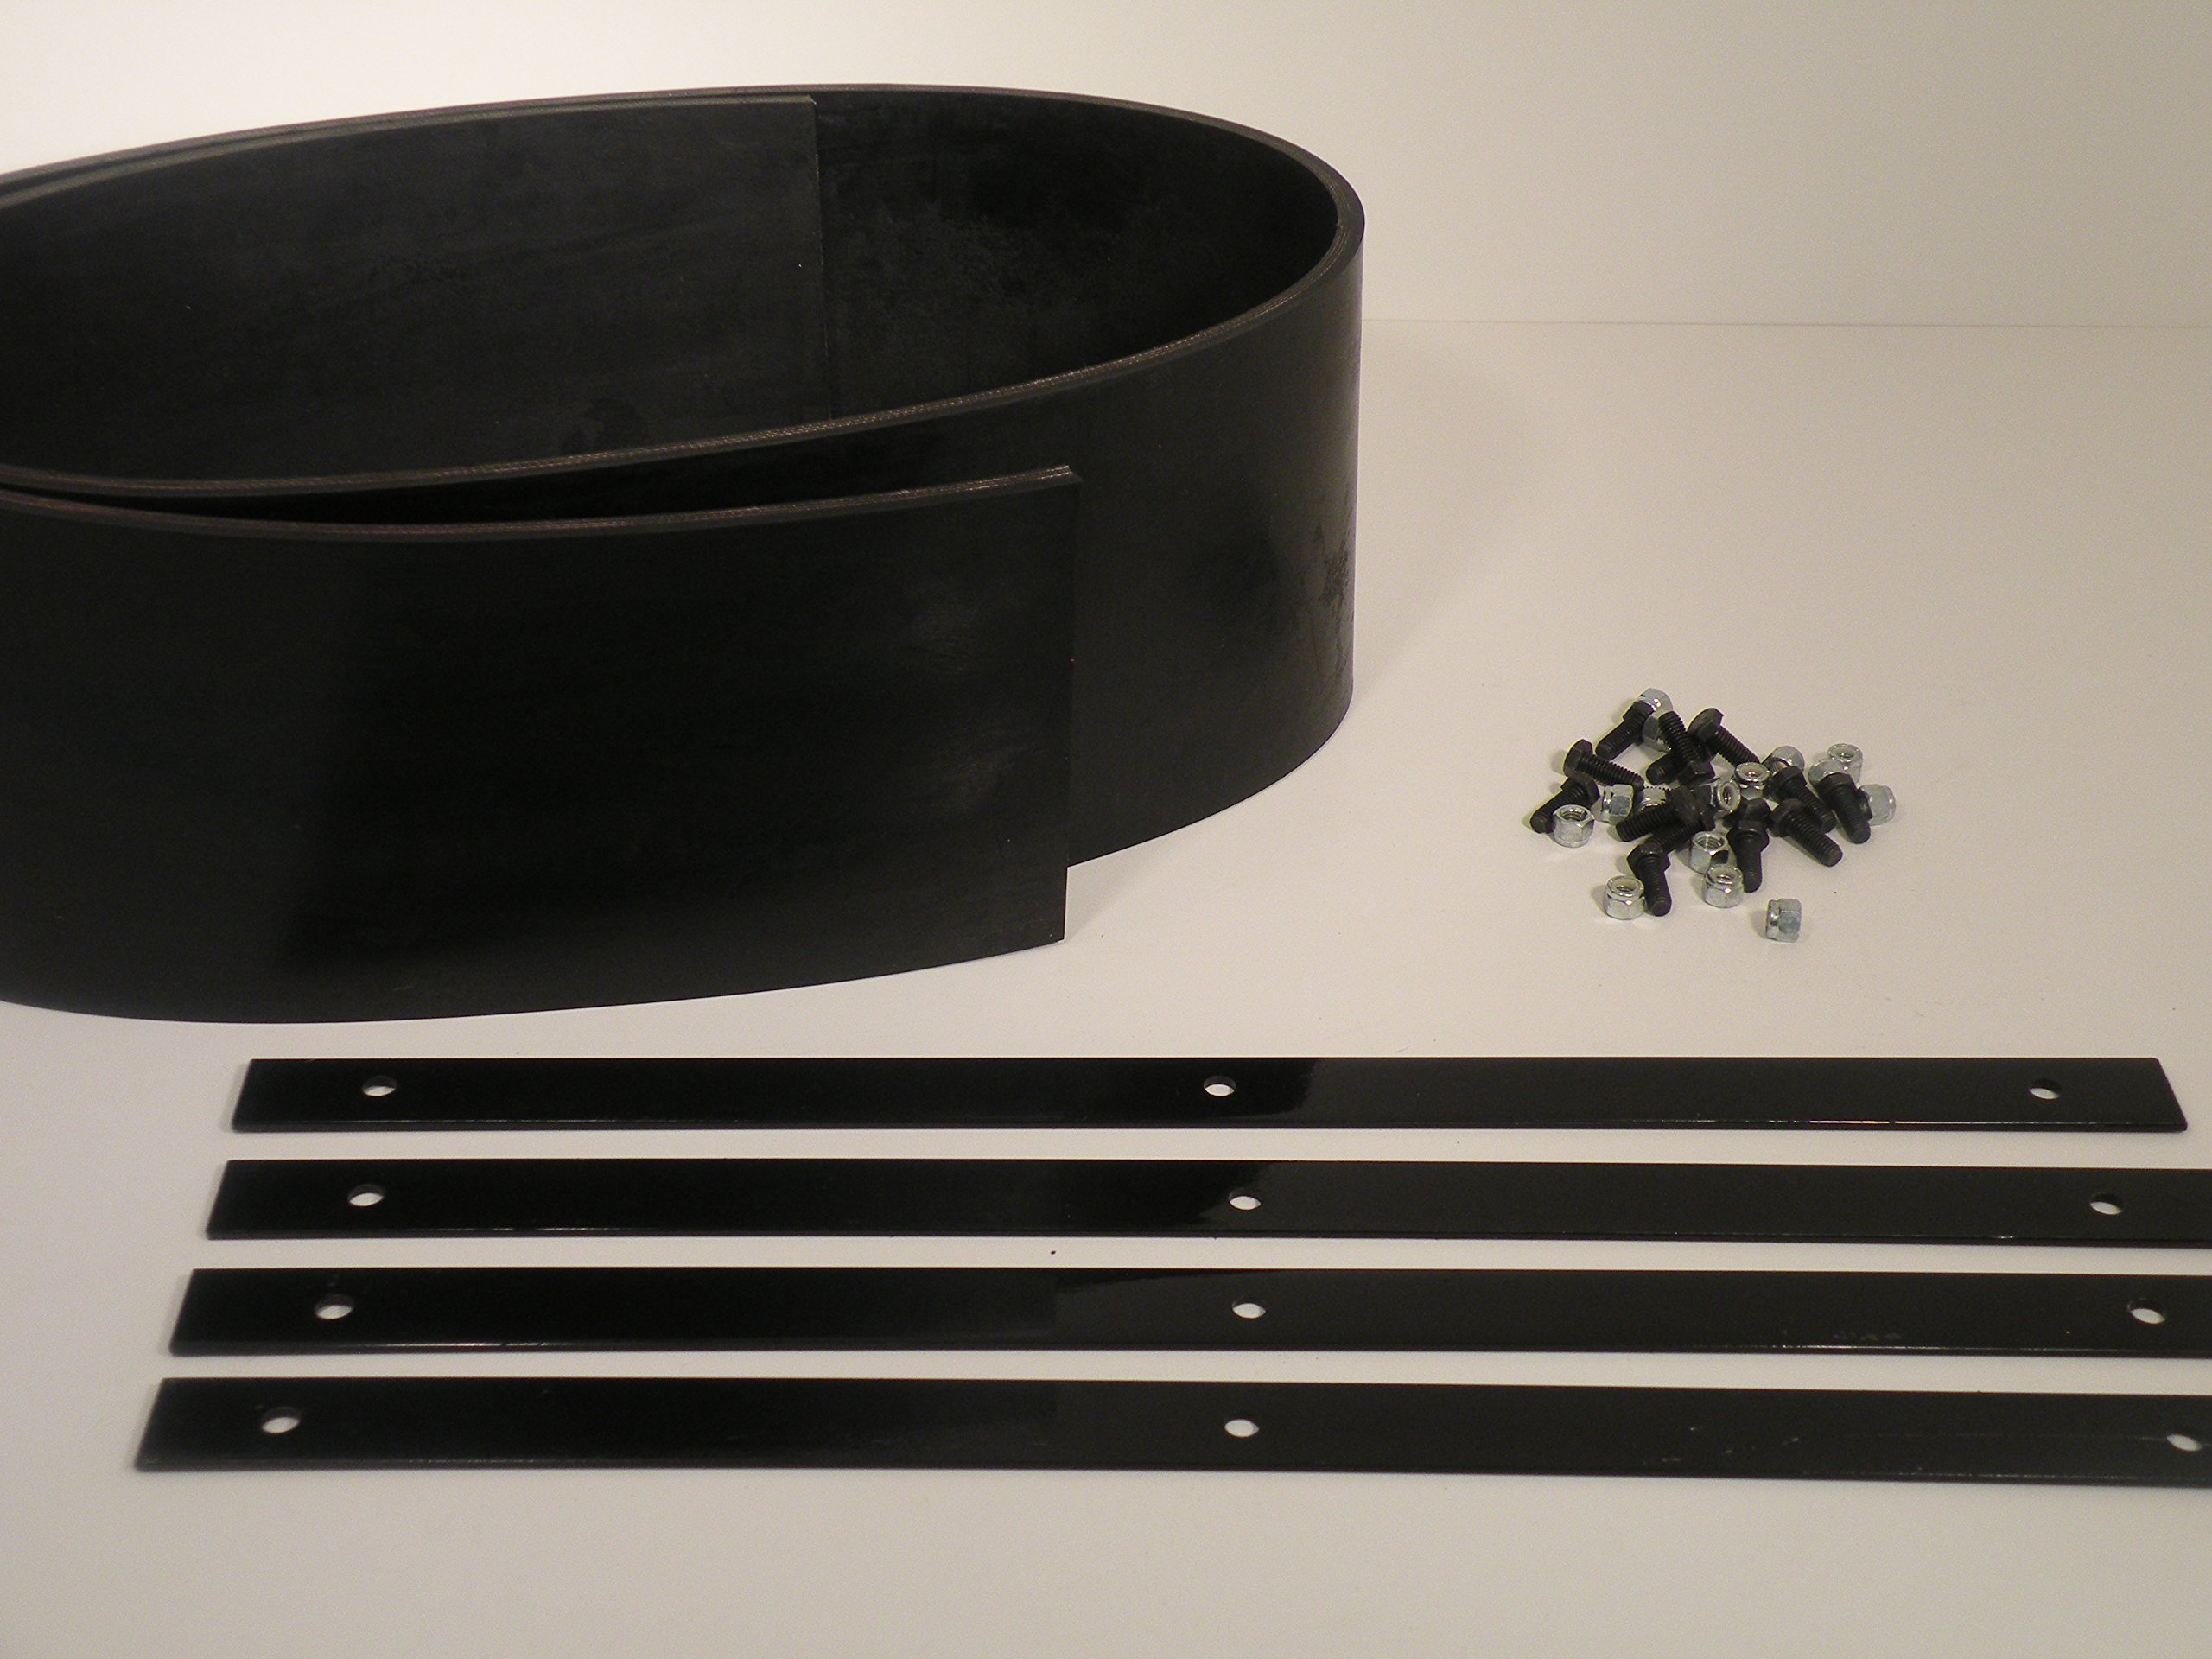 Universal Heavy Duty Rubber Snow Deflector Kit up to 8-10 Ft. Straight Plow